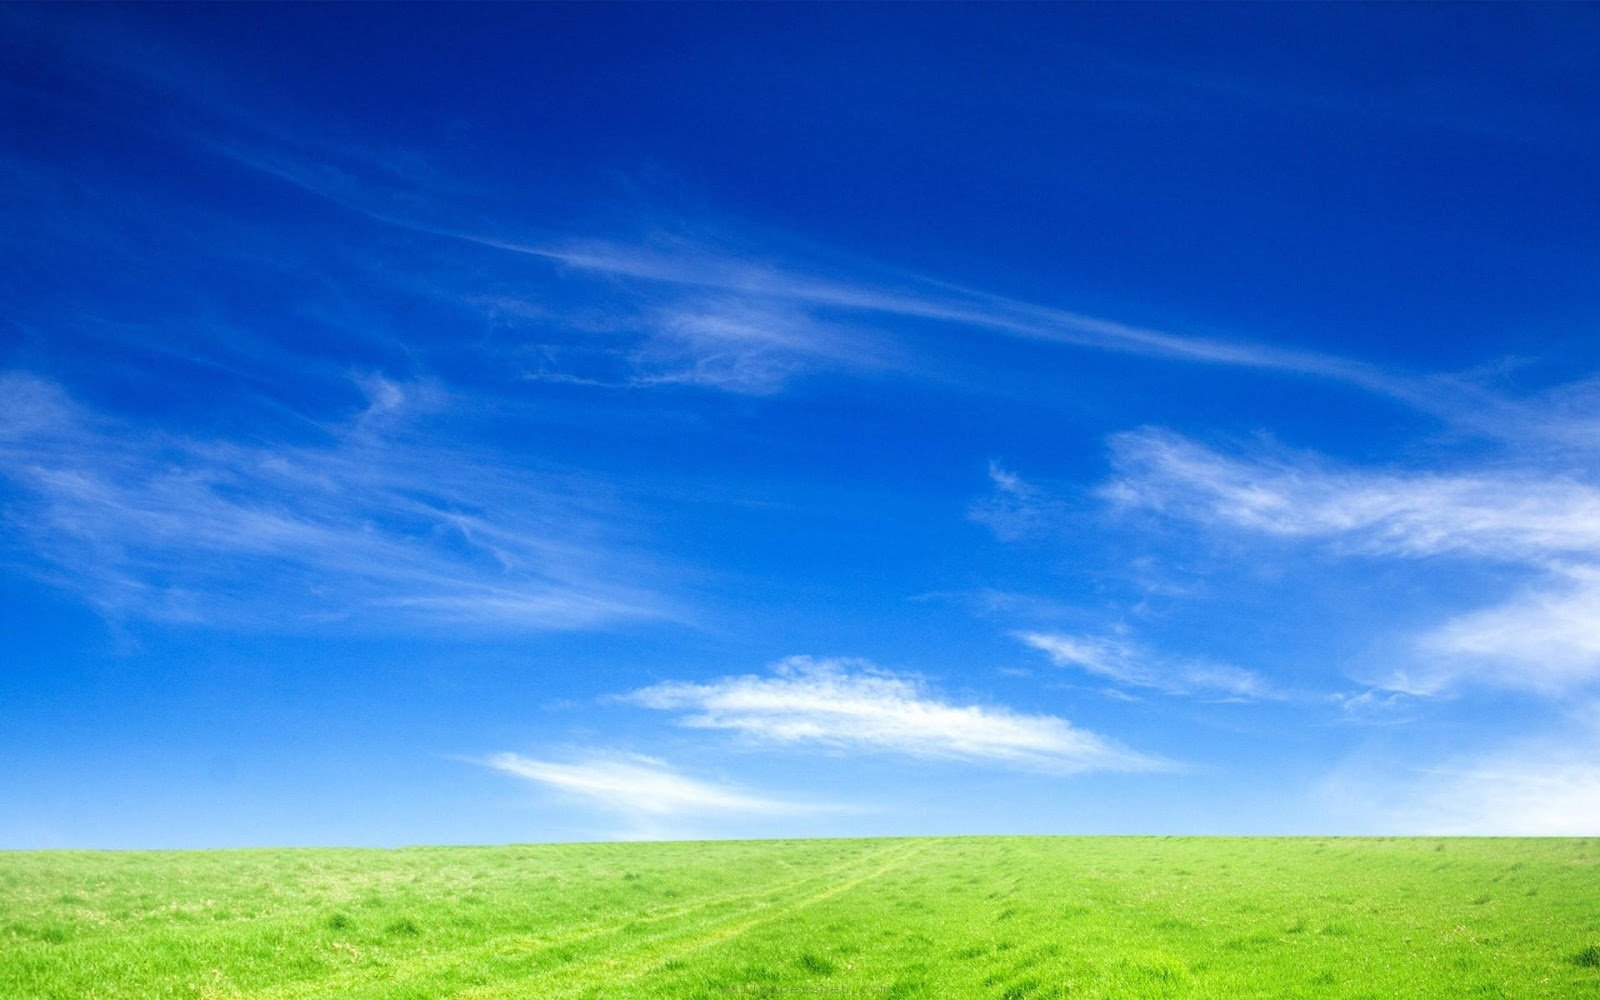 Blue Nature Background Images wallpapers join 1600x1000